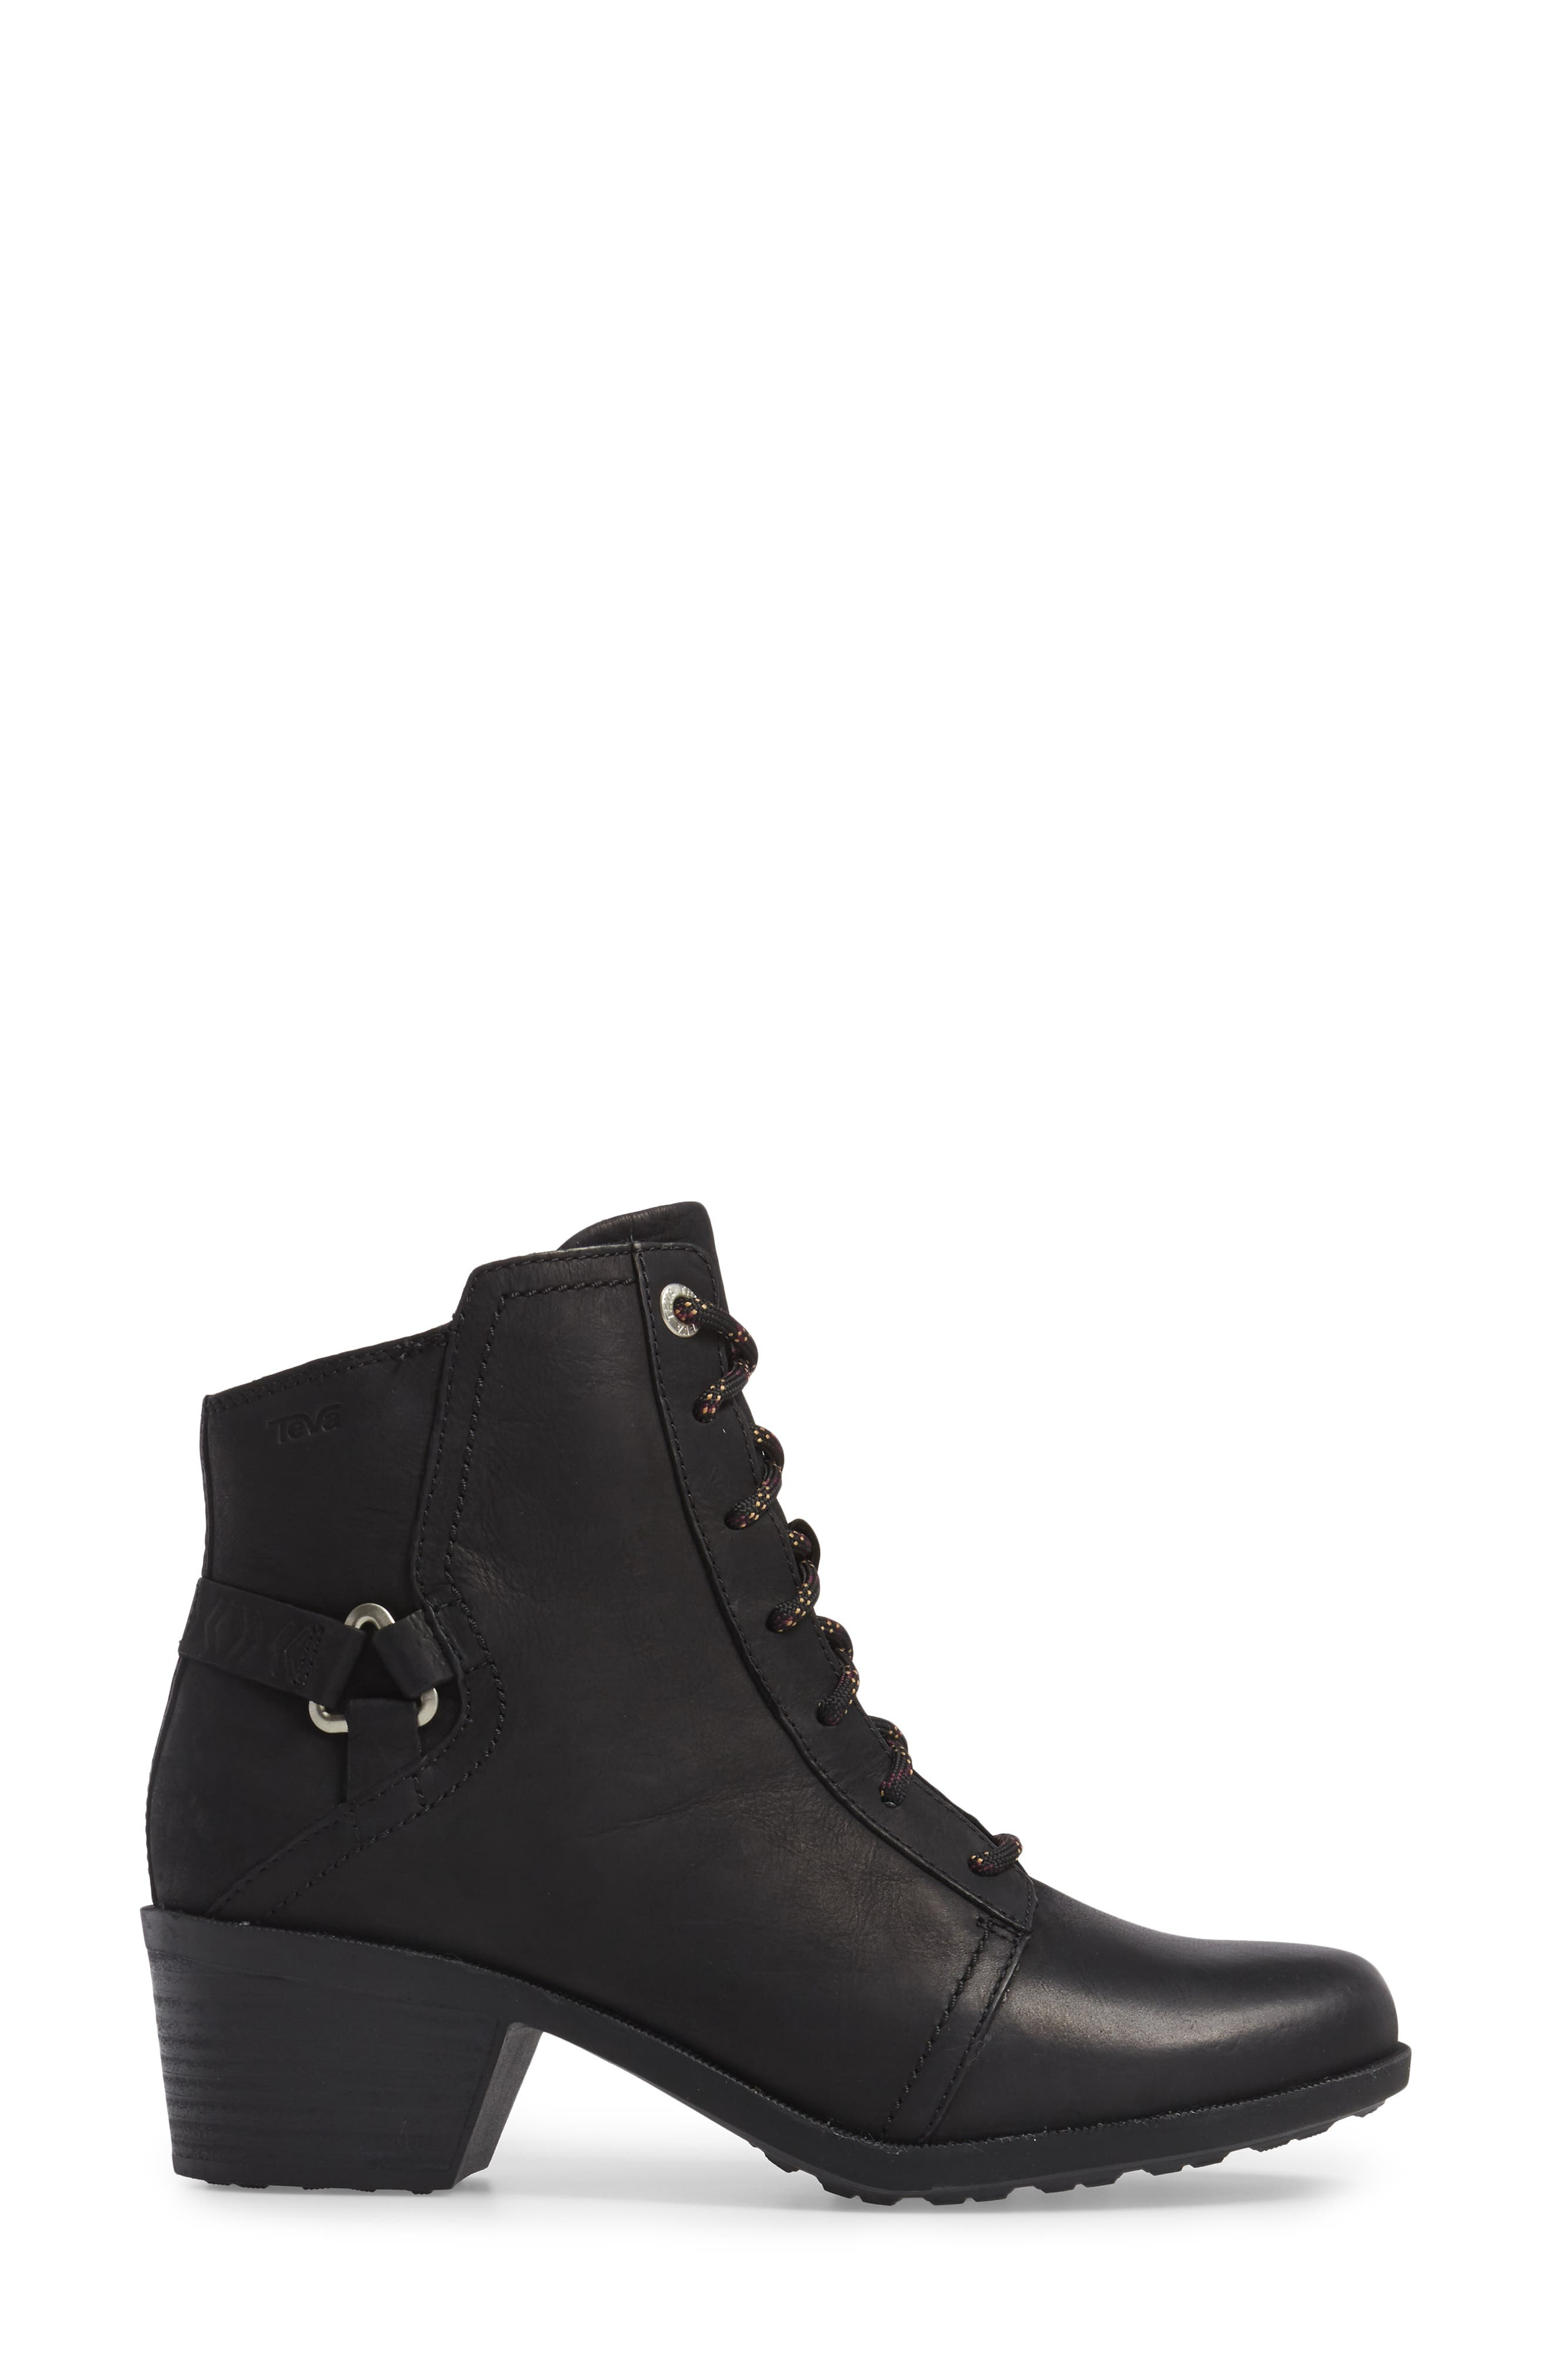 TEVA, Foxy Lace-Up Waterproof Boot, Alternate thumbnail 3, color, BLACK LEATHER